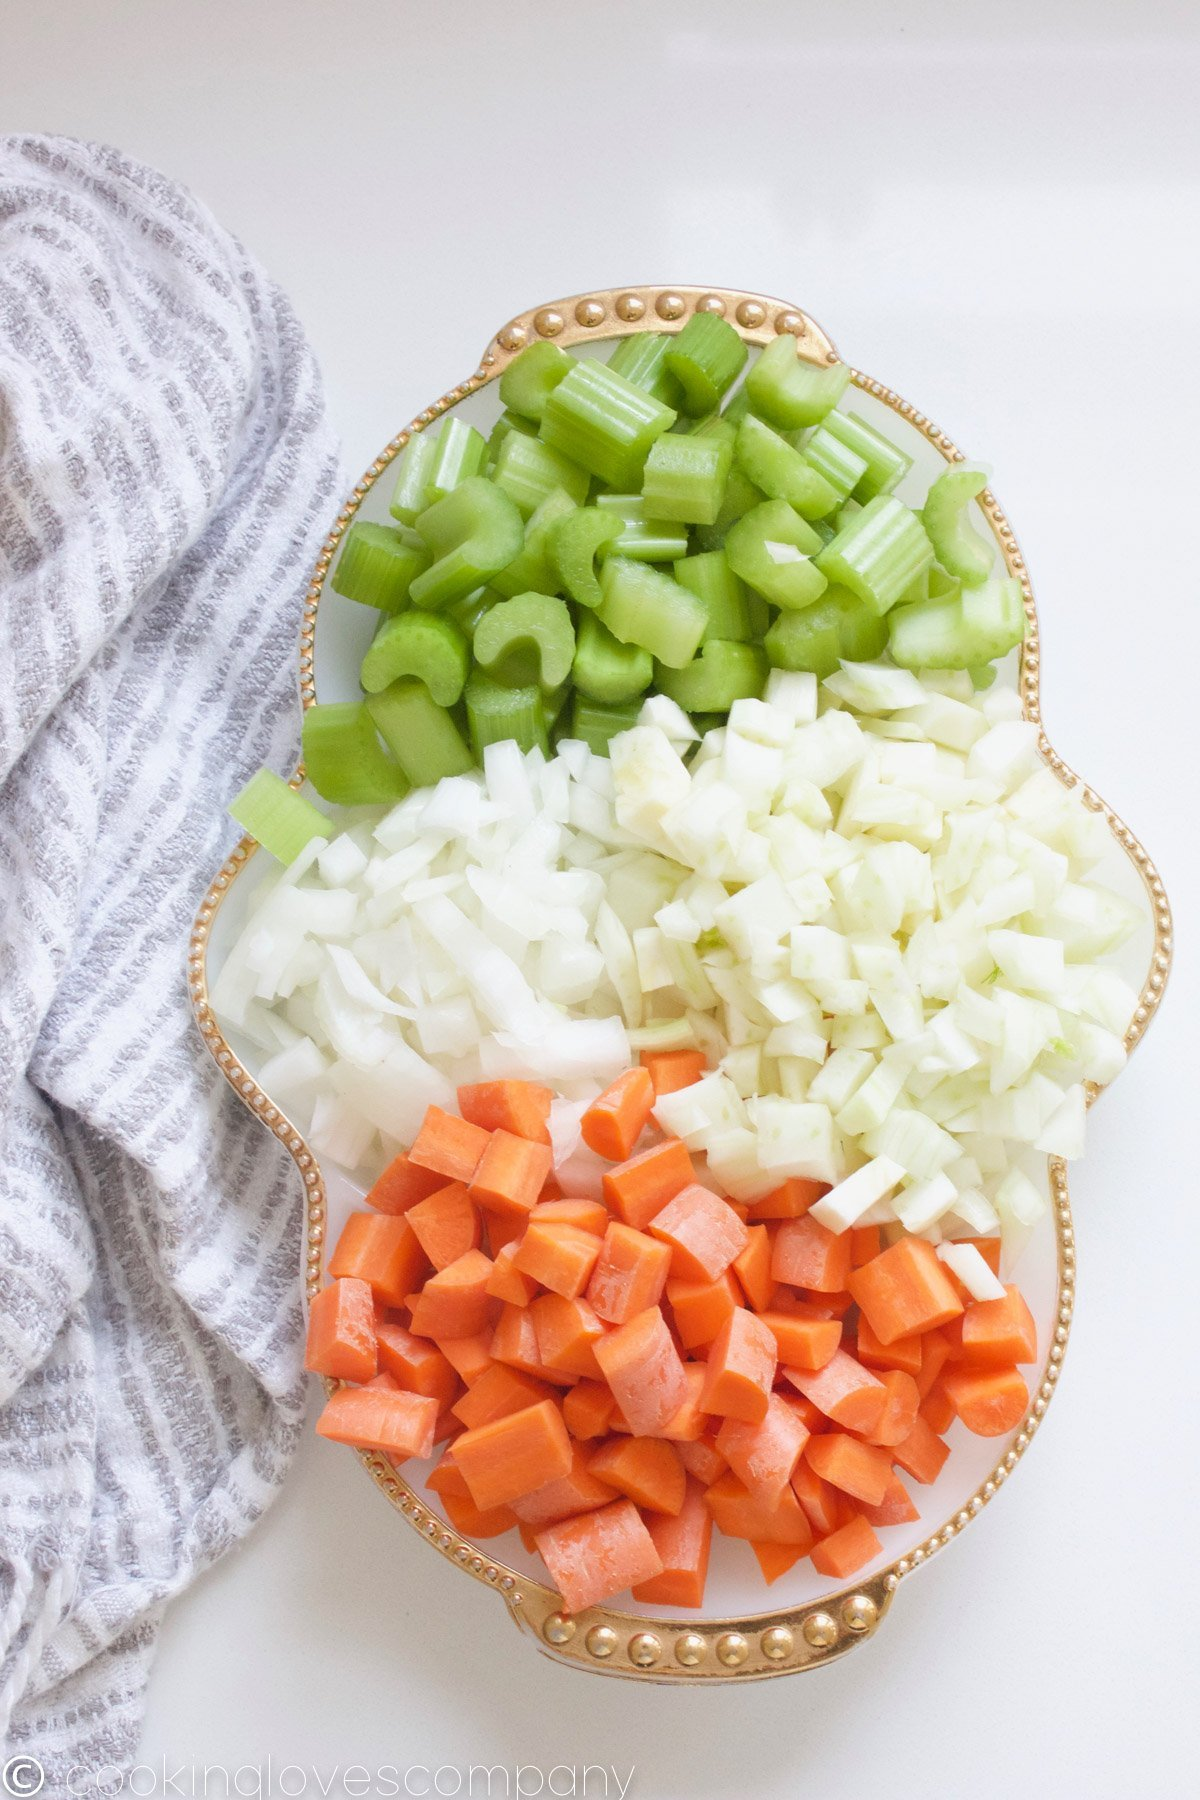 Chopped celery, carrots and onion on a platter with a grey and white towel